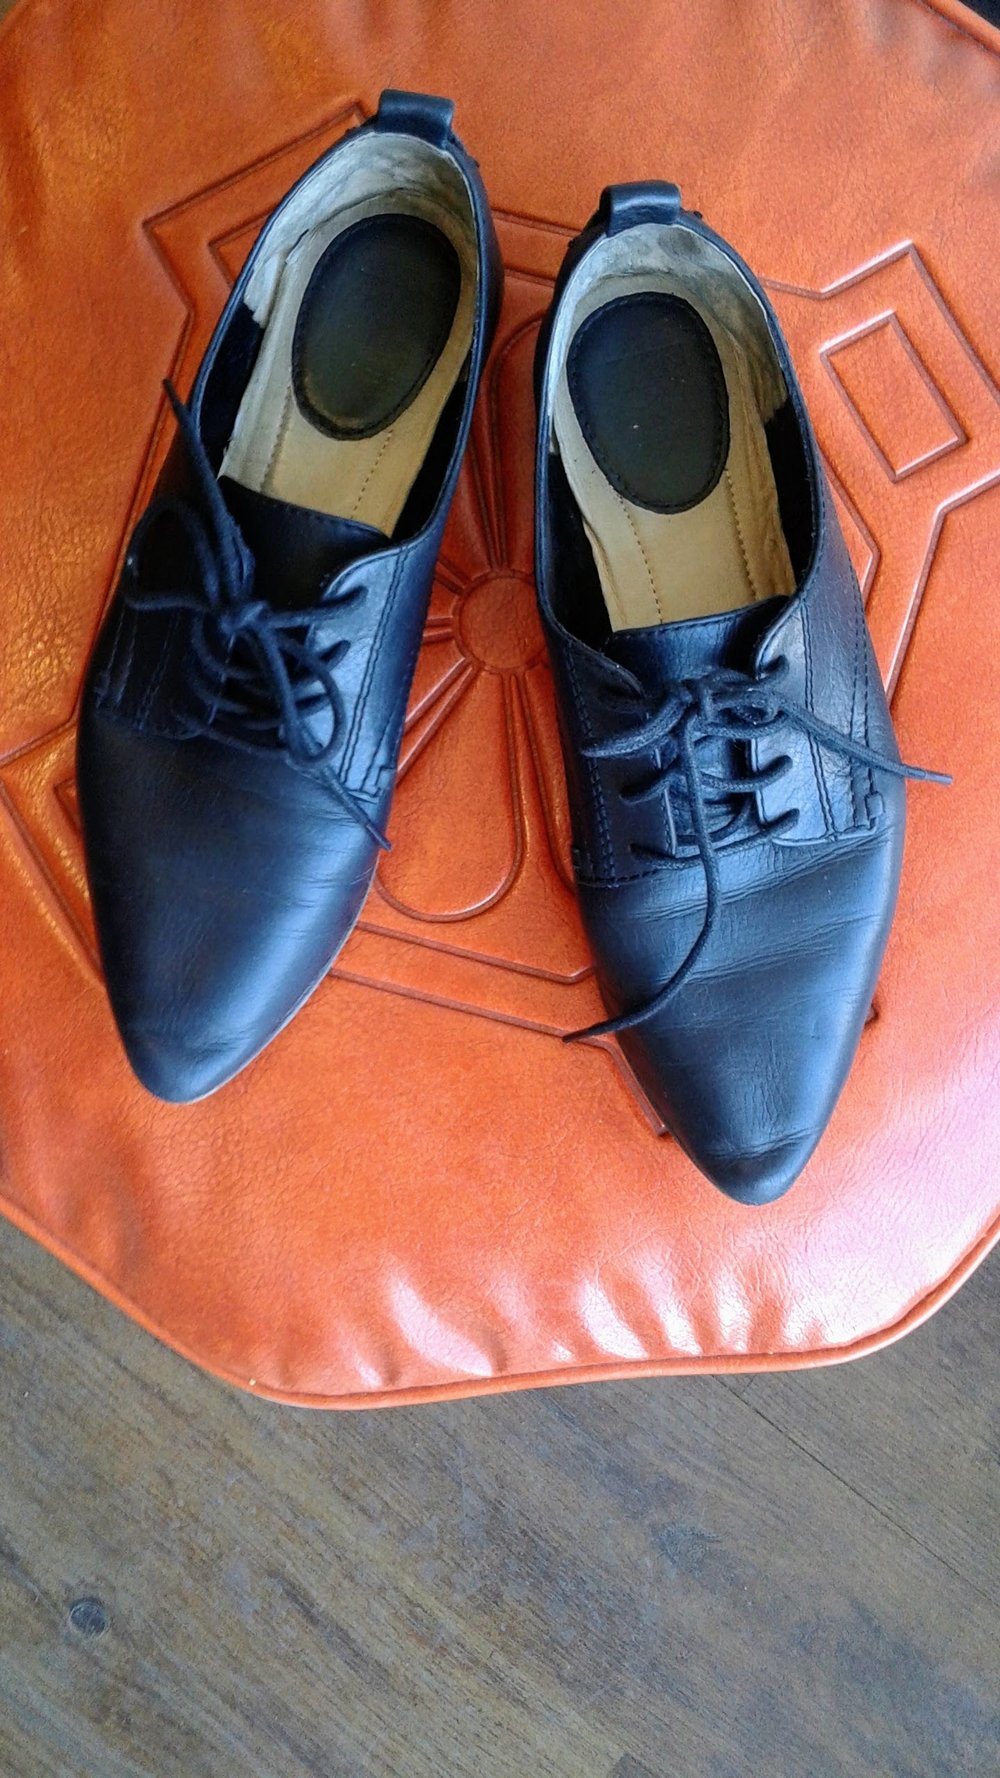 Frye shoes; S7.5, $34